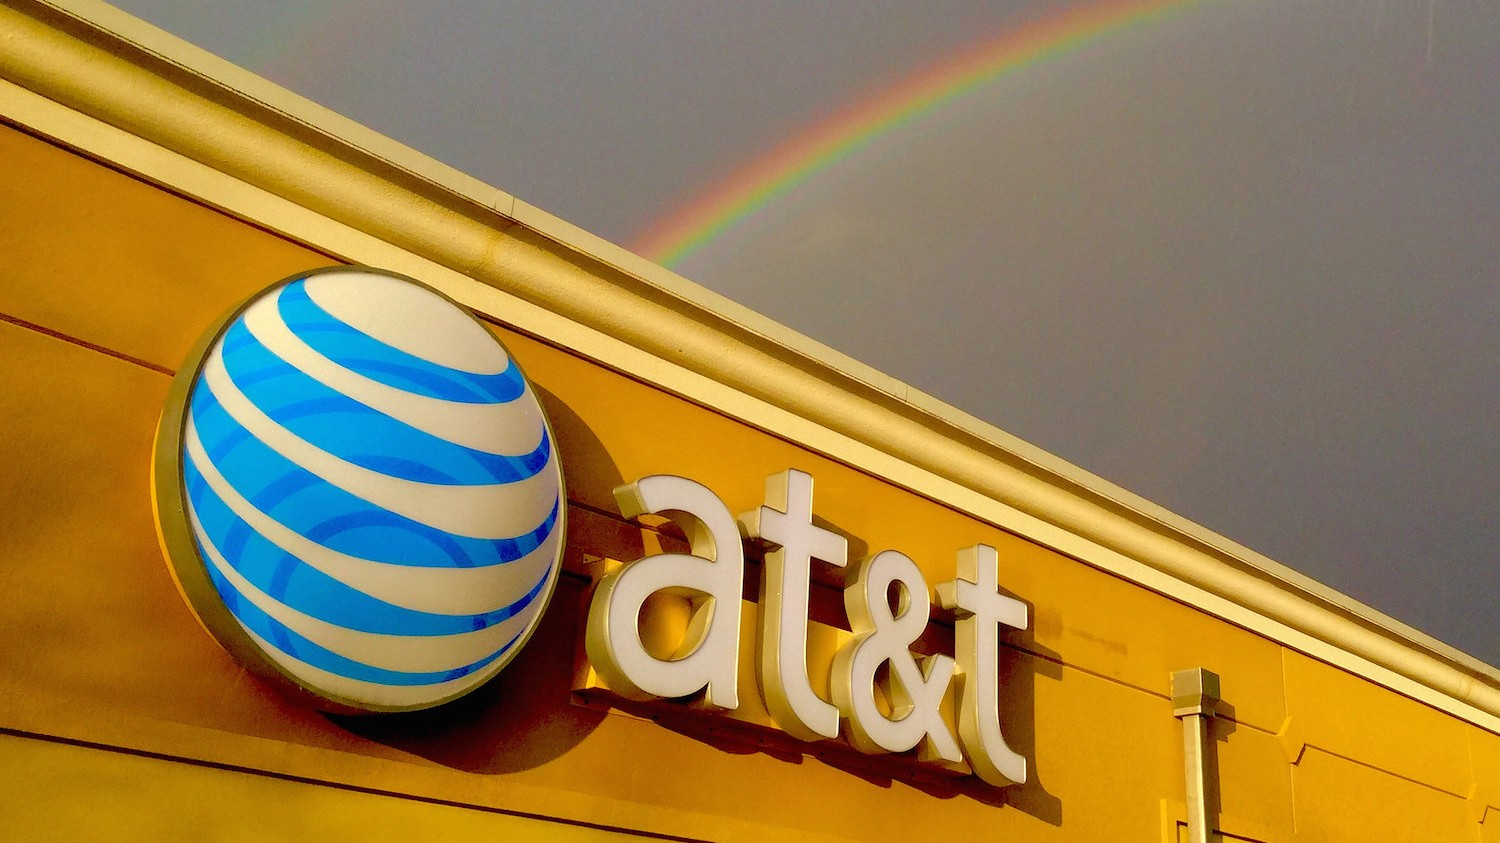 Public Interest Groups Sound the Alarm Over Possible AT&T-Time Warner Merger